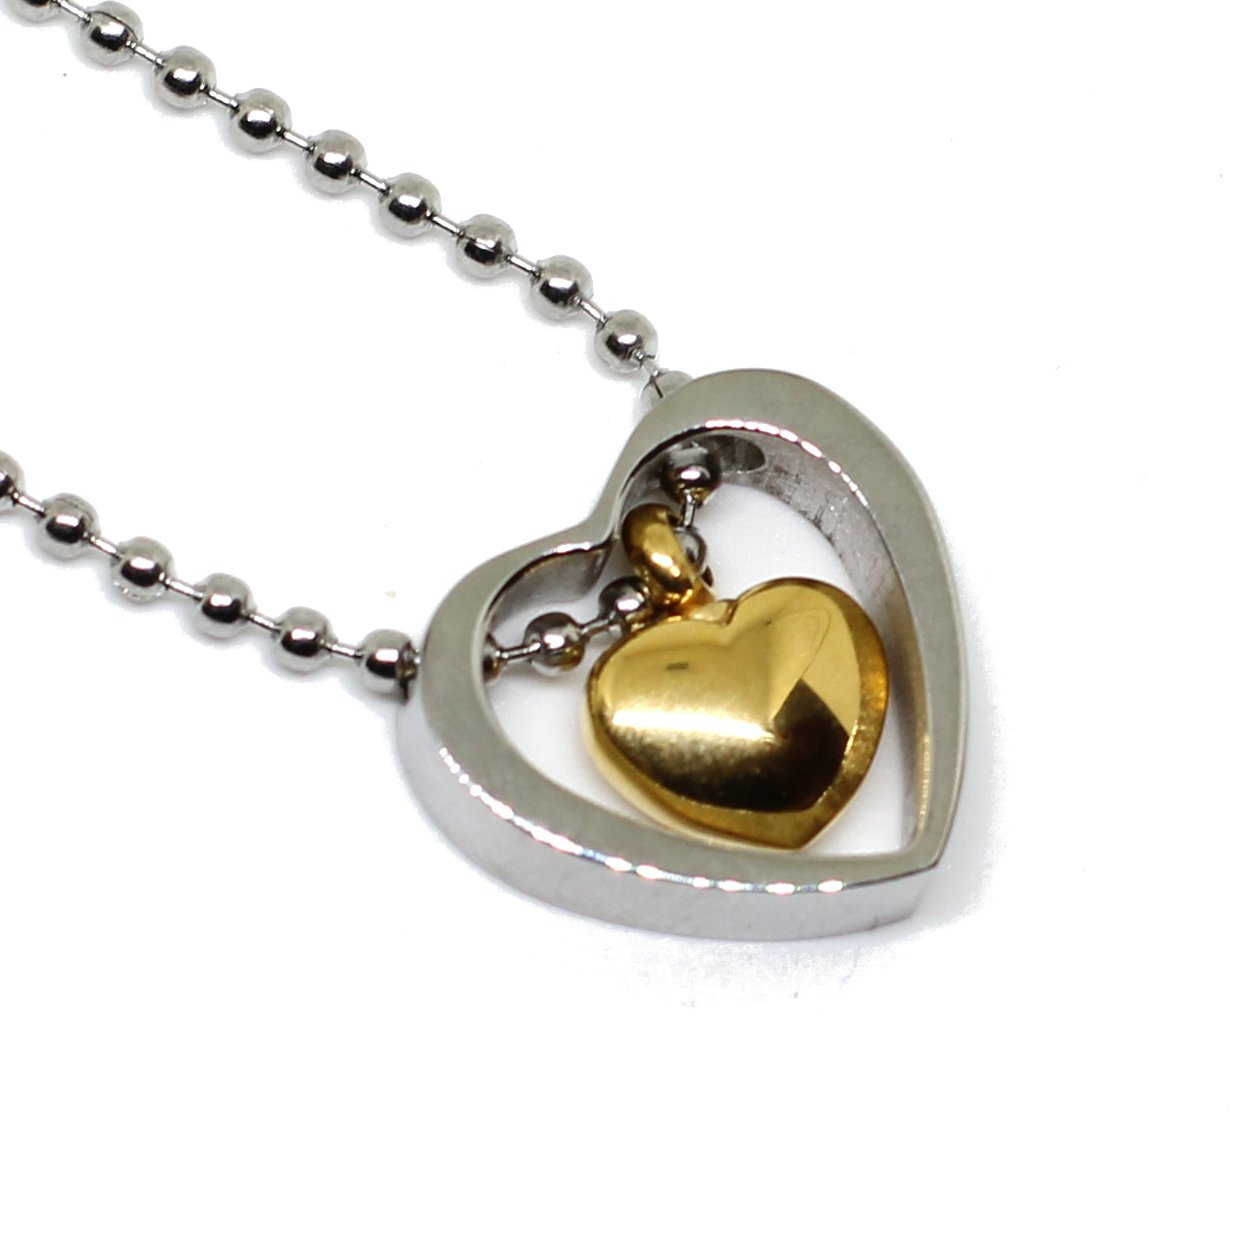 Lauren Annabelle Studio Cremation Jewelry Heart in Heart Urn Ashes Stainless Steel Pendant Necklace Men Women 2 Pendants in 1